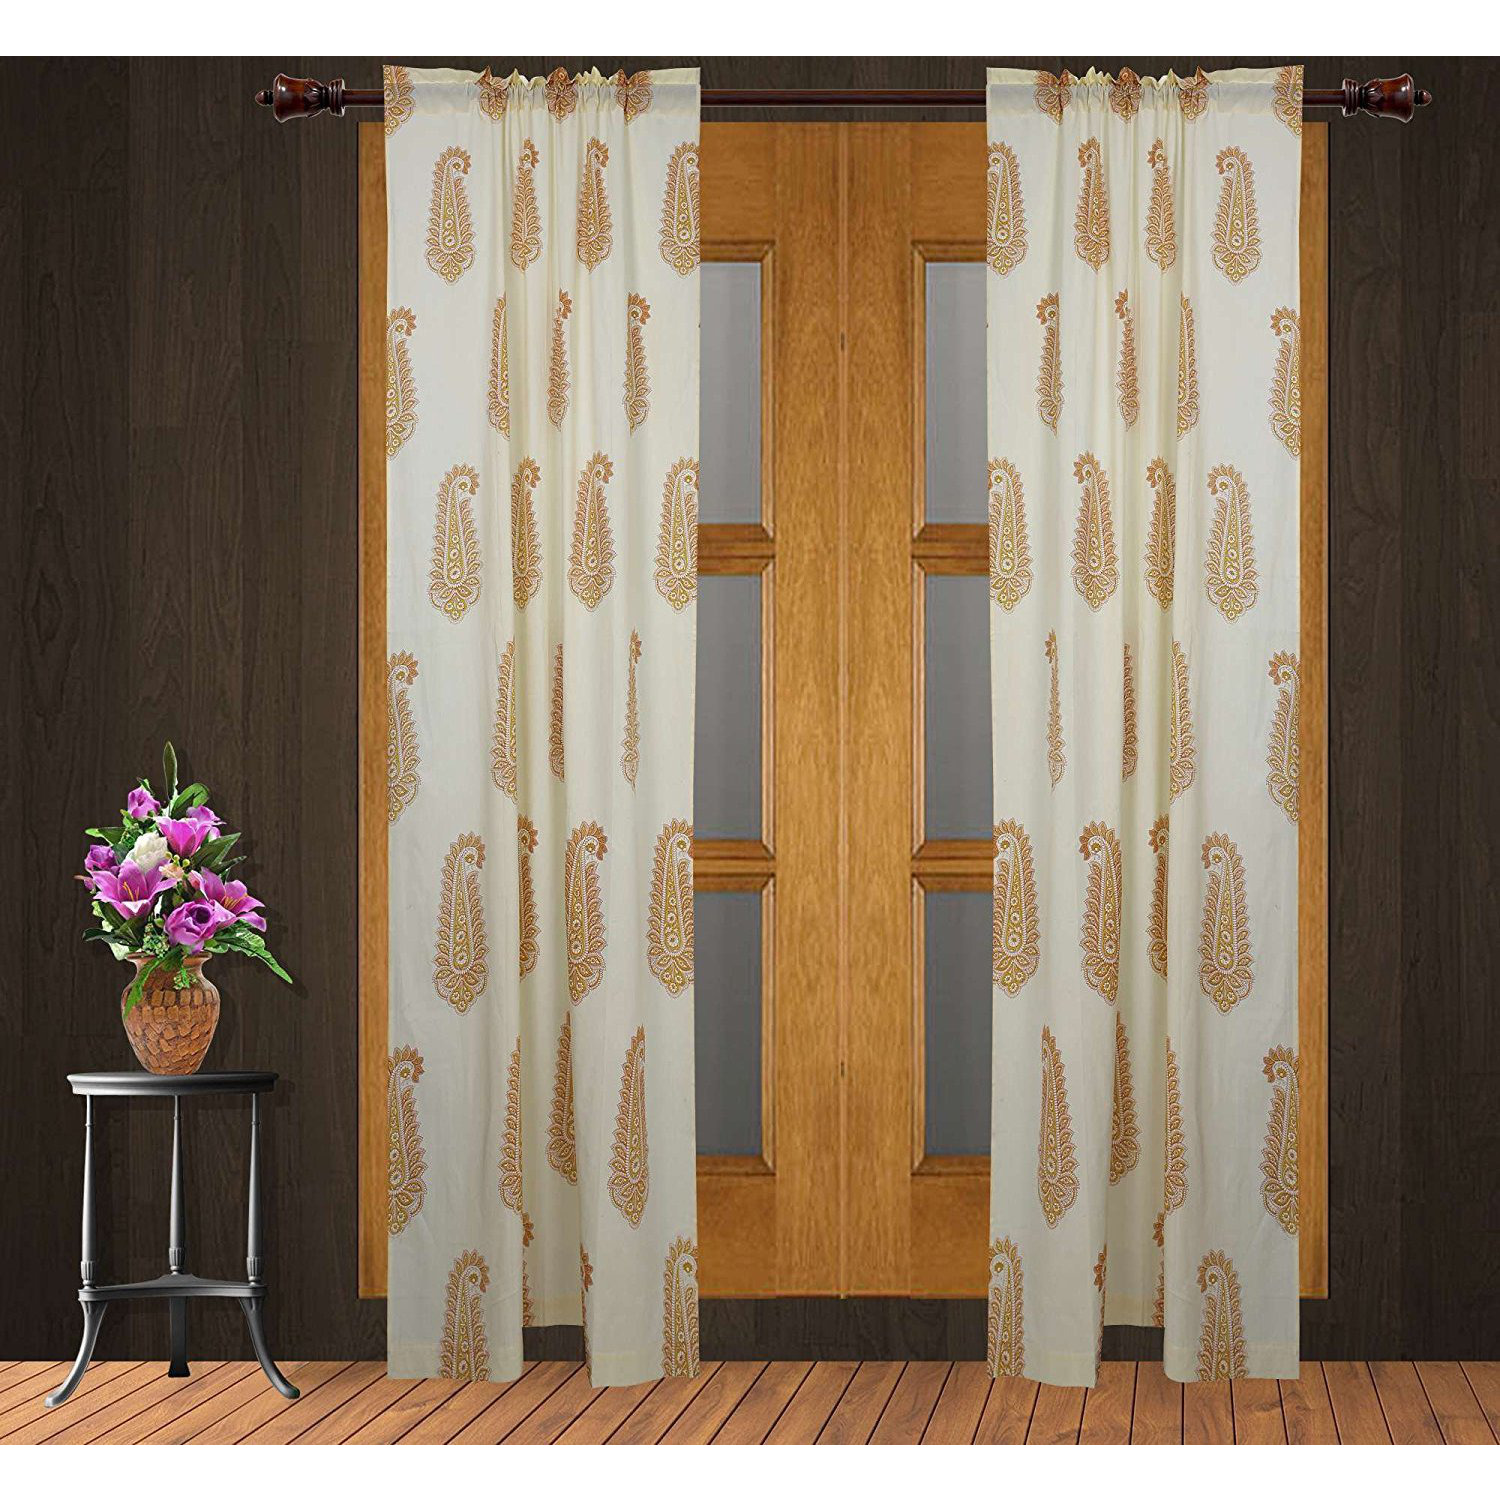 Cotton Floral Curtain Panels For Living Room Beige 84 X 40 Inch Set Of 2: Home & Kitchen